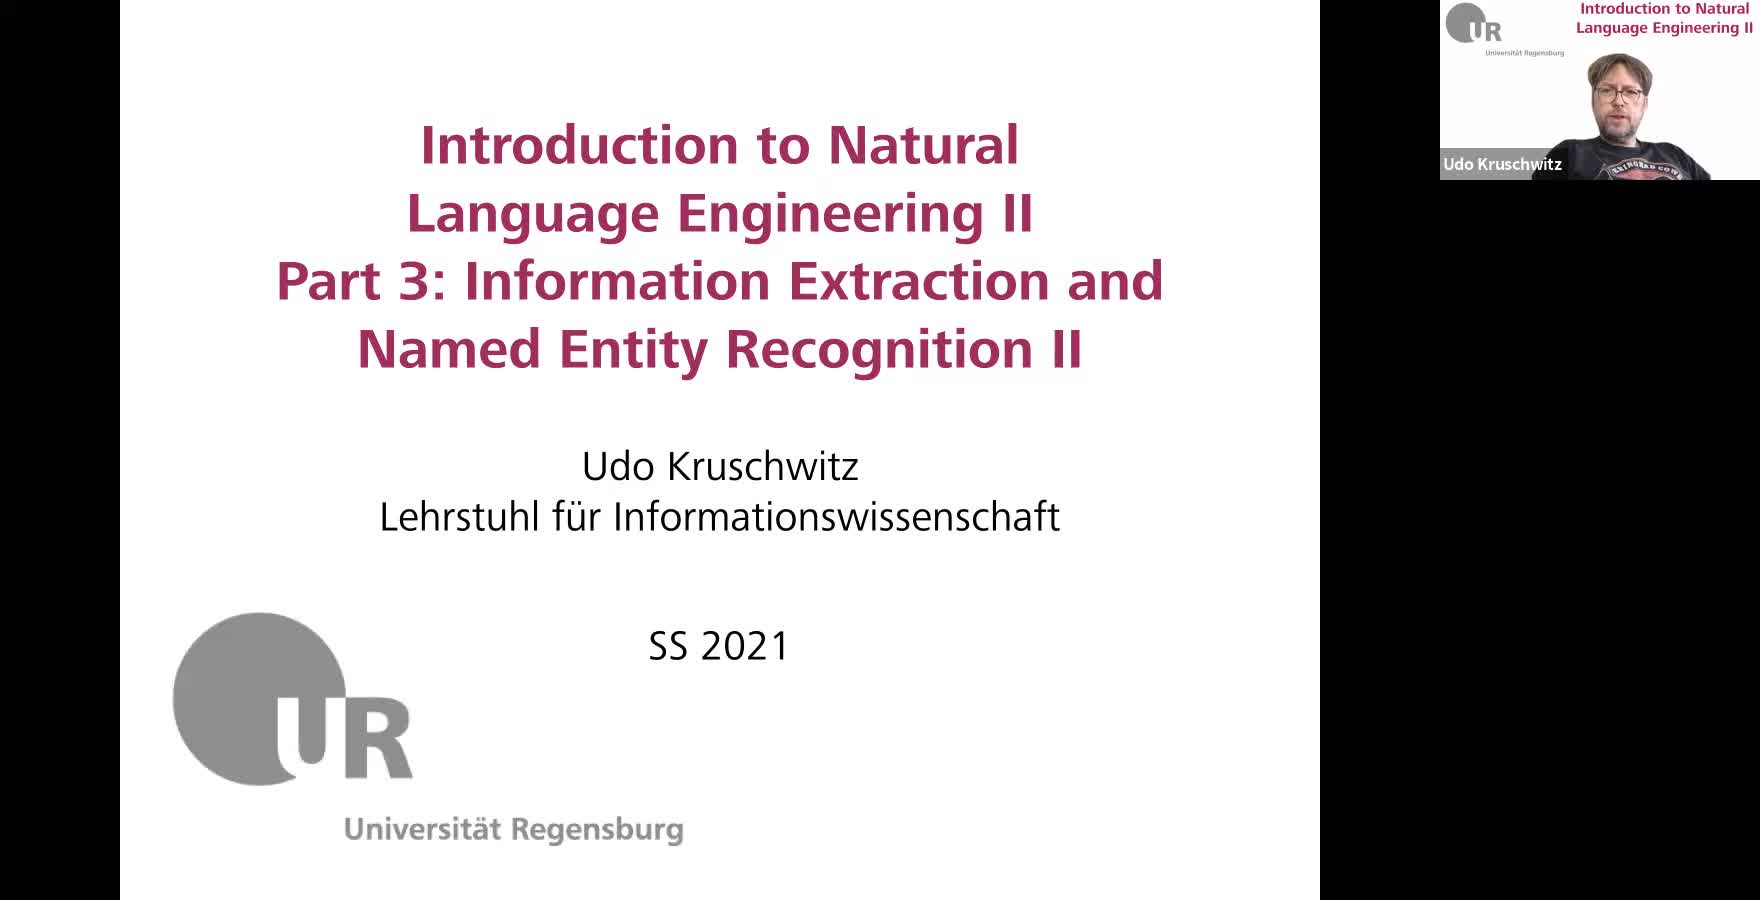 Introduction to Natural Language Engineering 2 / Informationslinguistik 2 - Lecture 4 (Information Extraction and Named Entity Recognition II (cont.) / Informationsextraktion und Extraktion von Entitäten II (Fortsetzung))